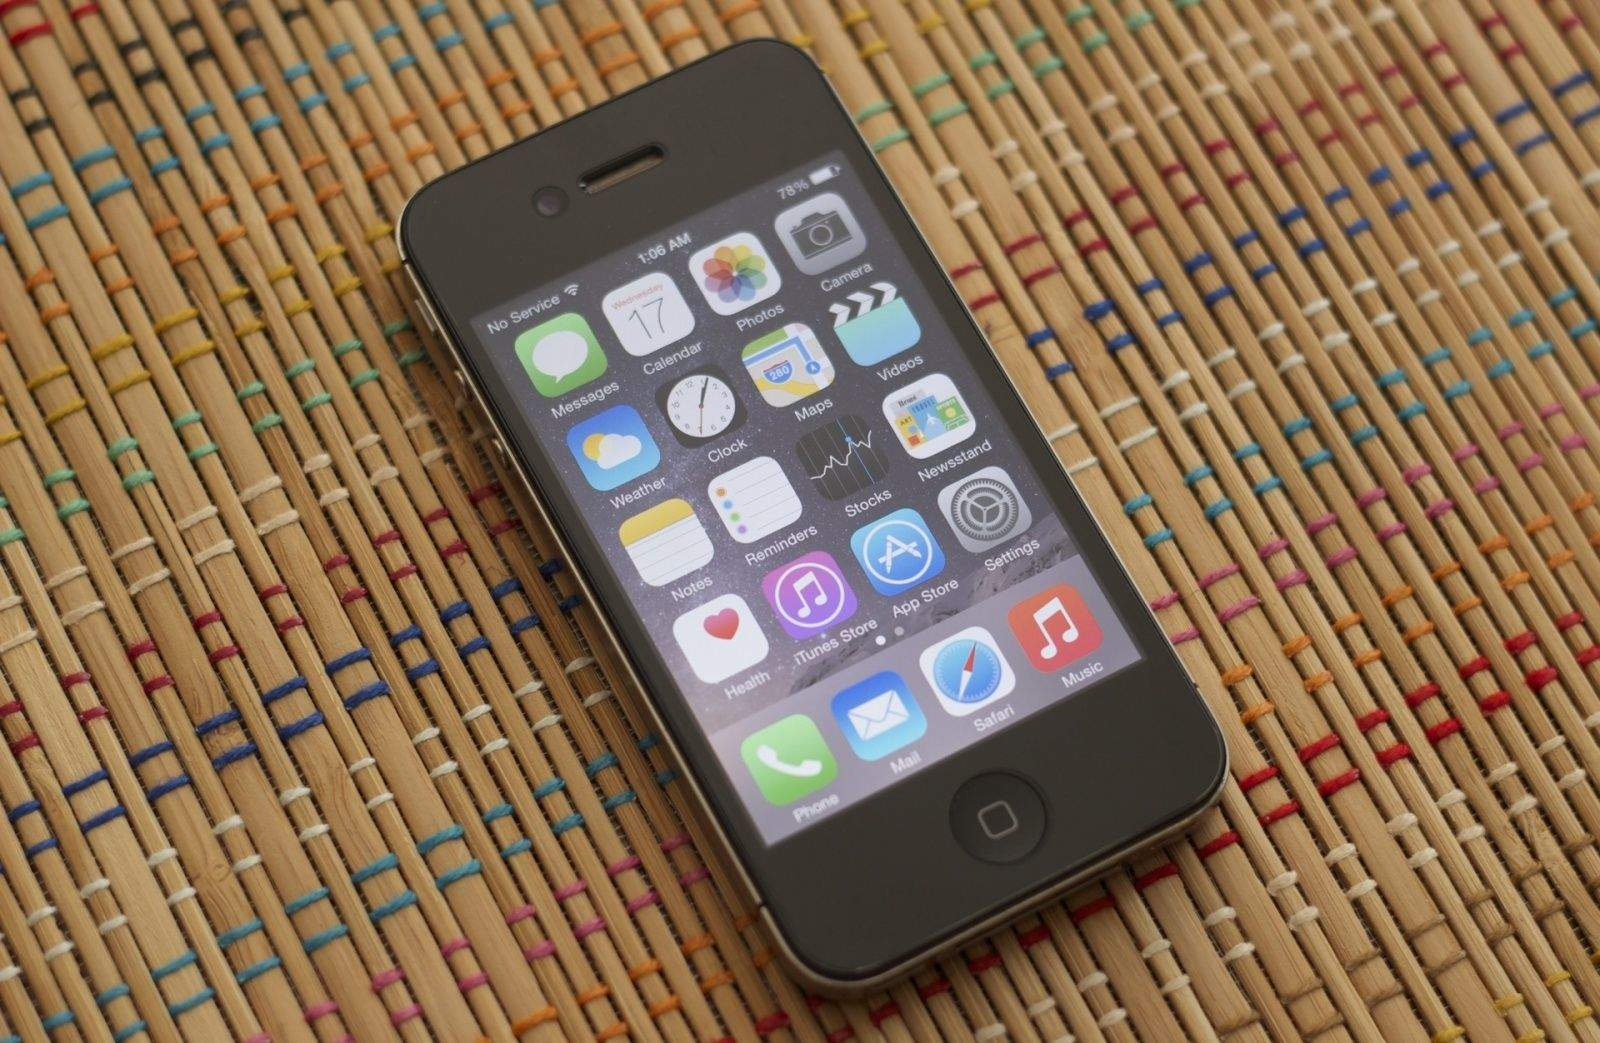 iOS 8.1.1 is still a bad choice for iPhone 4s owners. Photo: Ars Technica